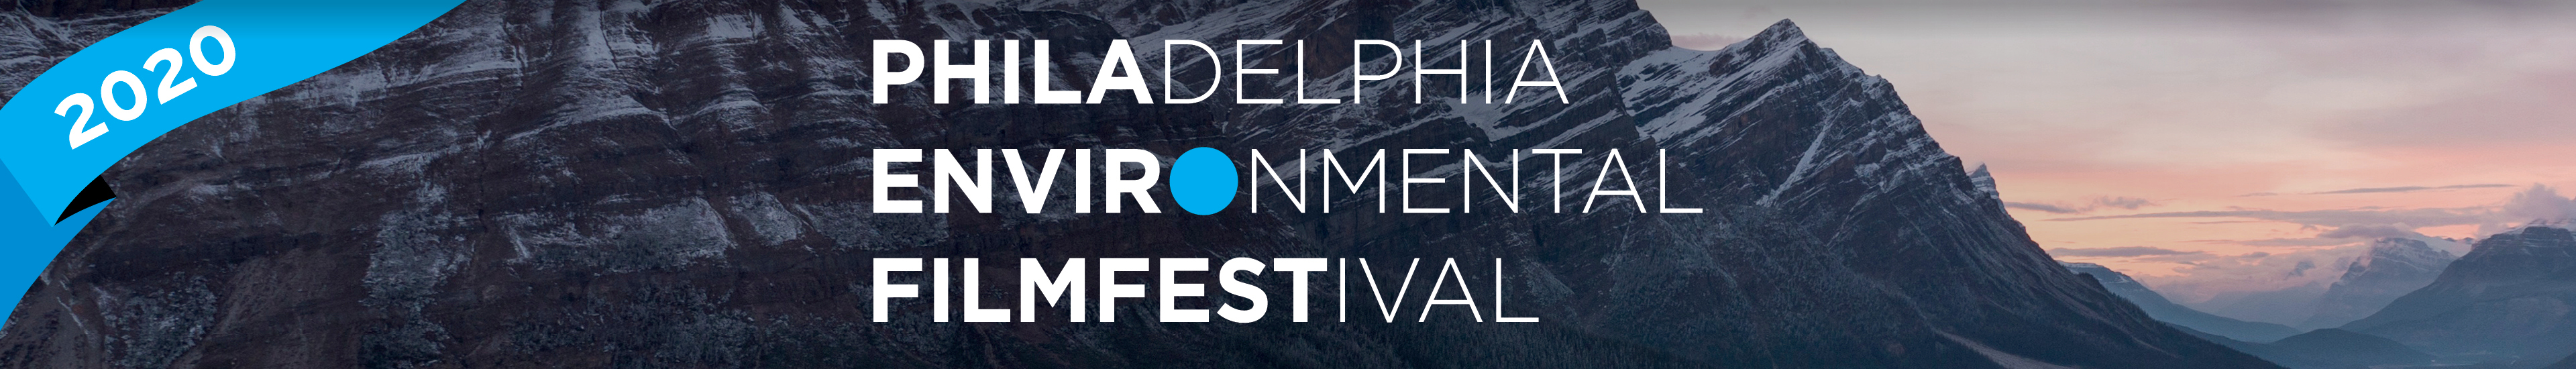 Philadelphia Environmental Film Festival 2020